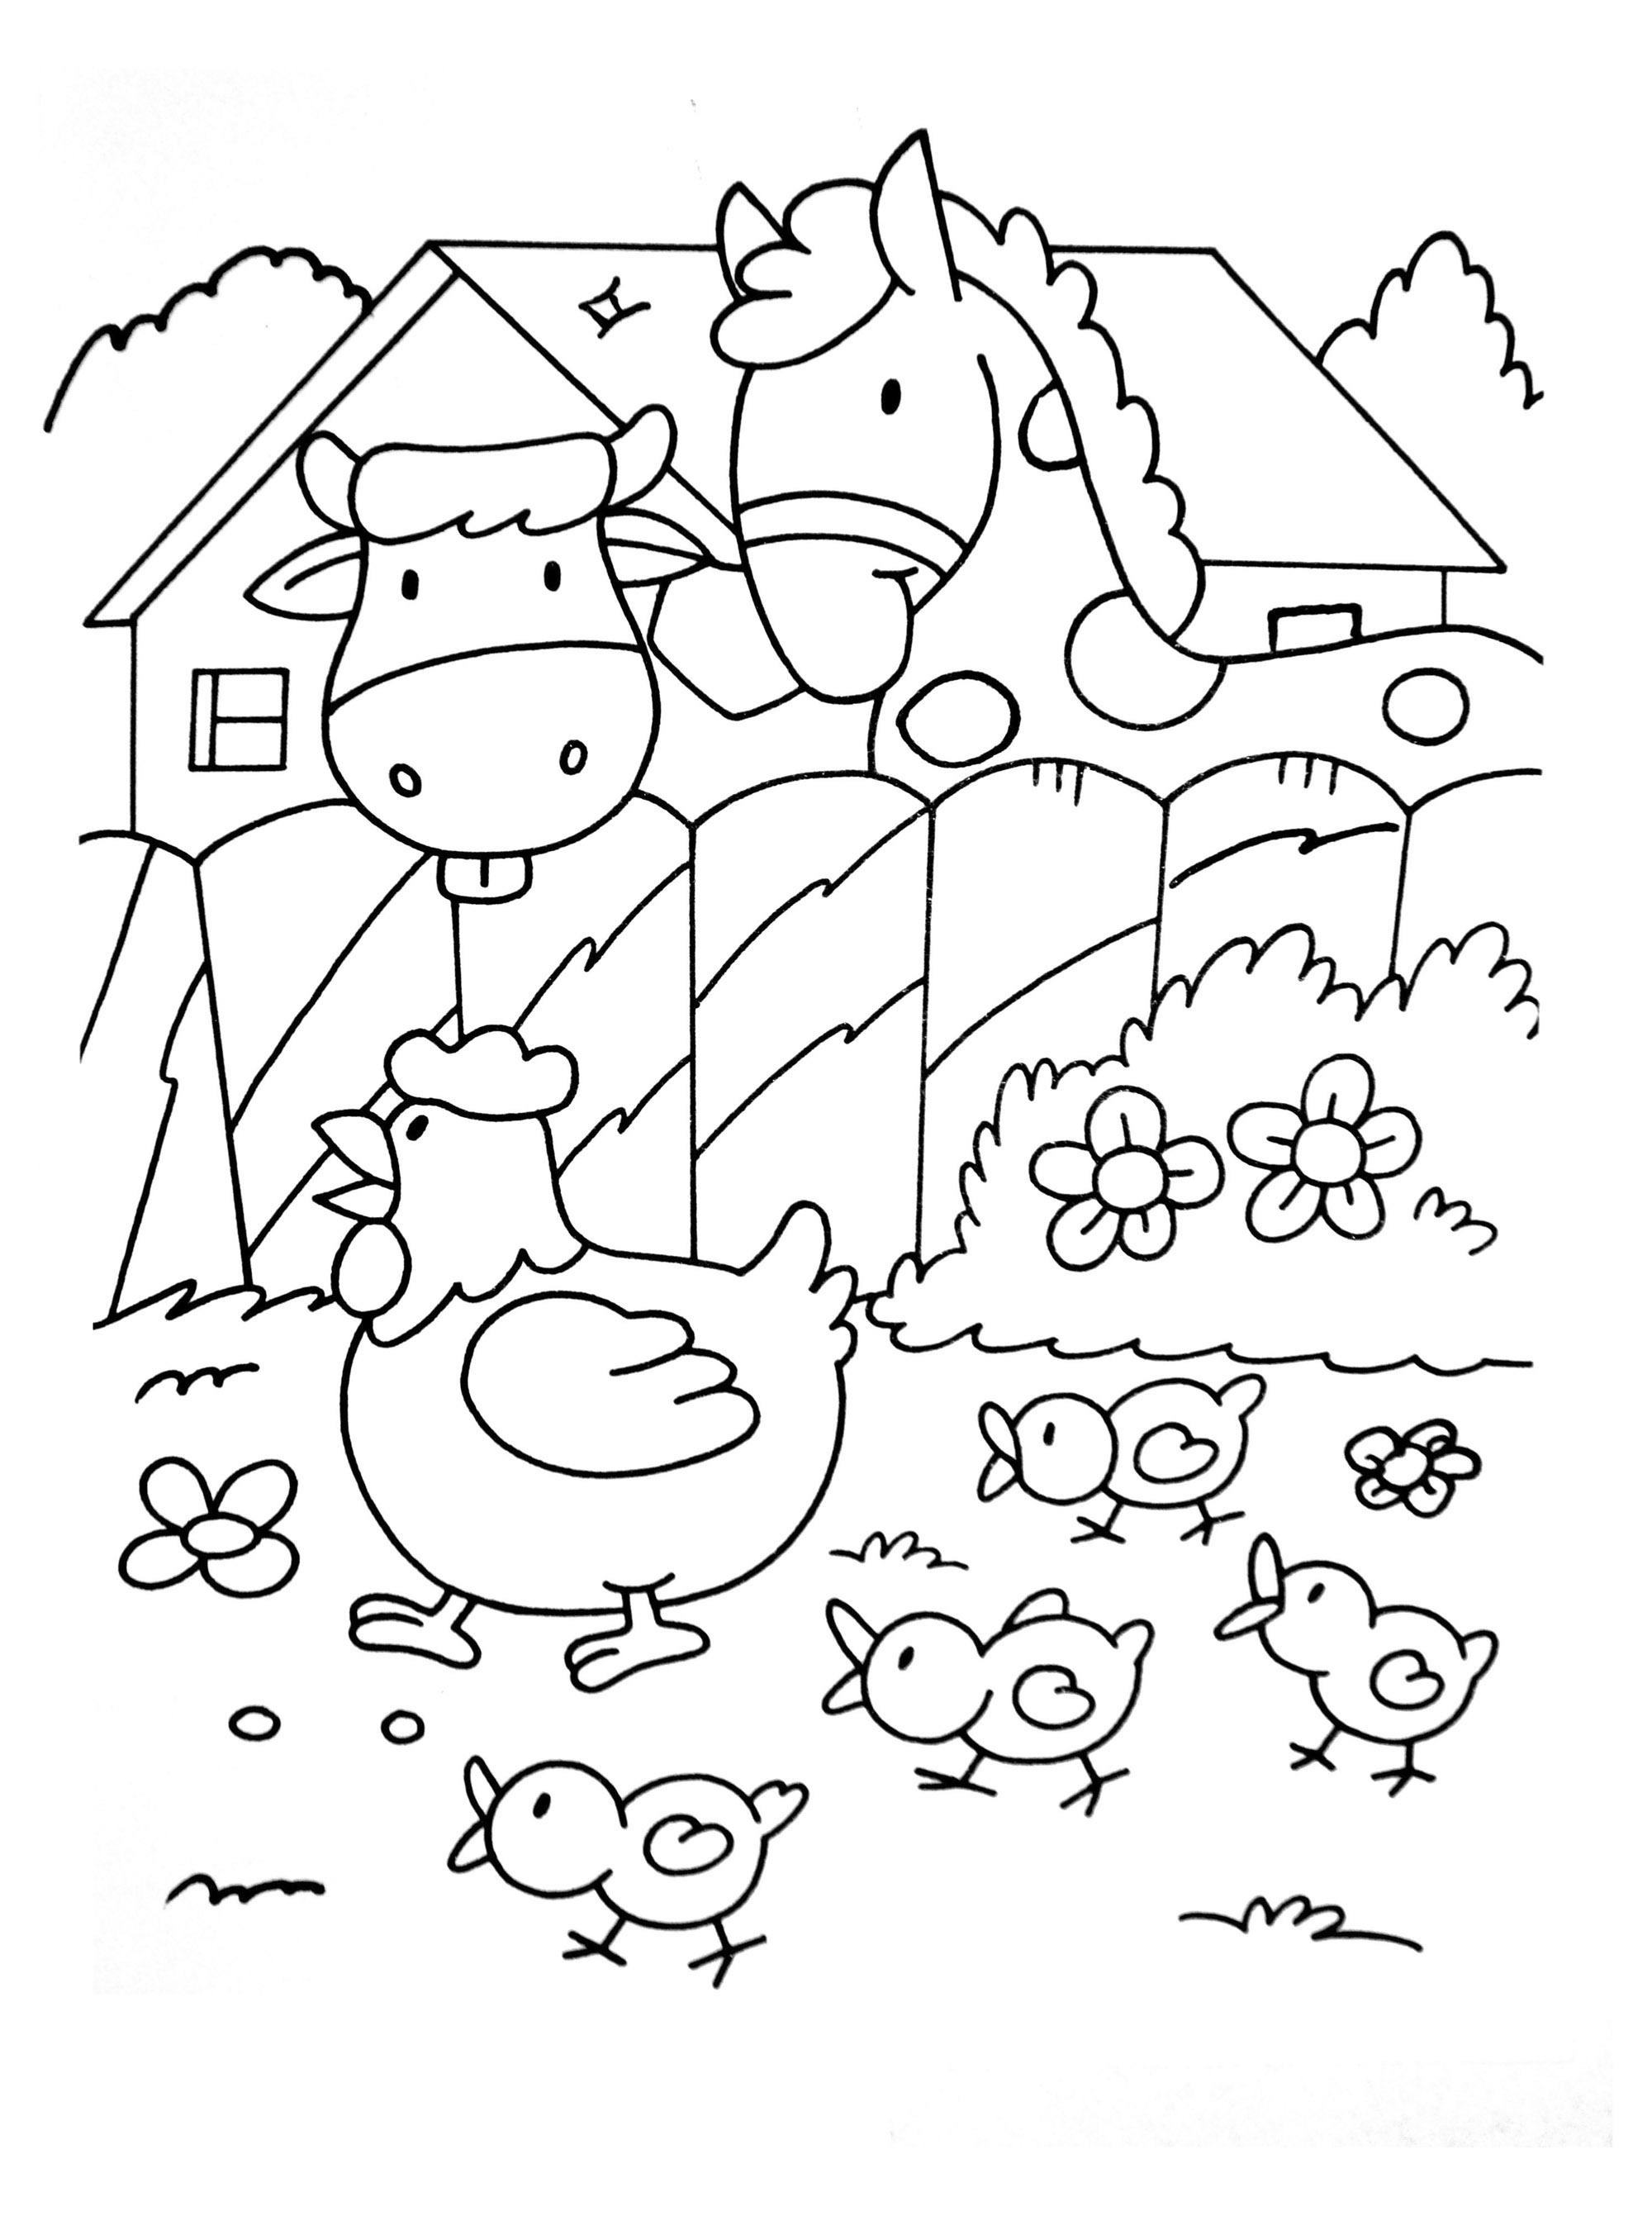 Luxe Image Coloriage Ferme